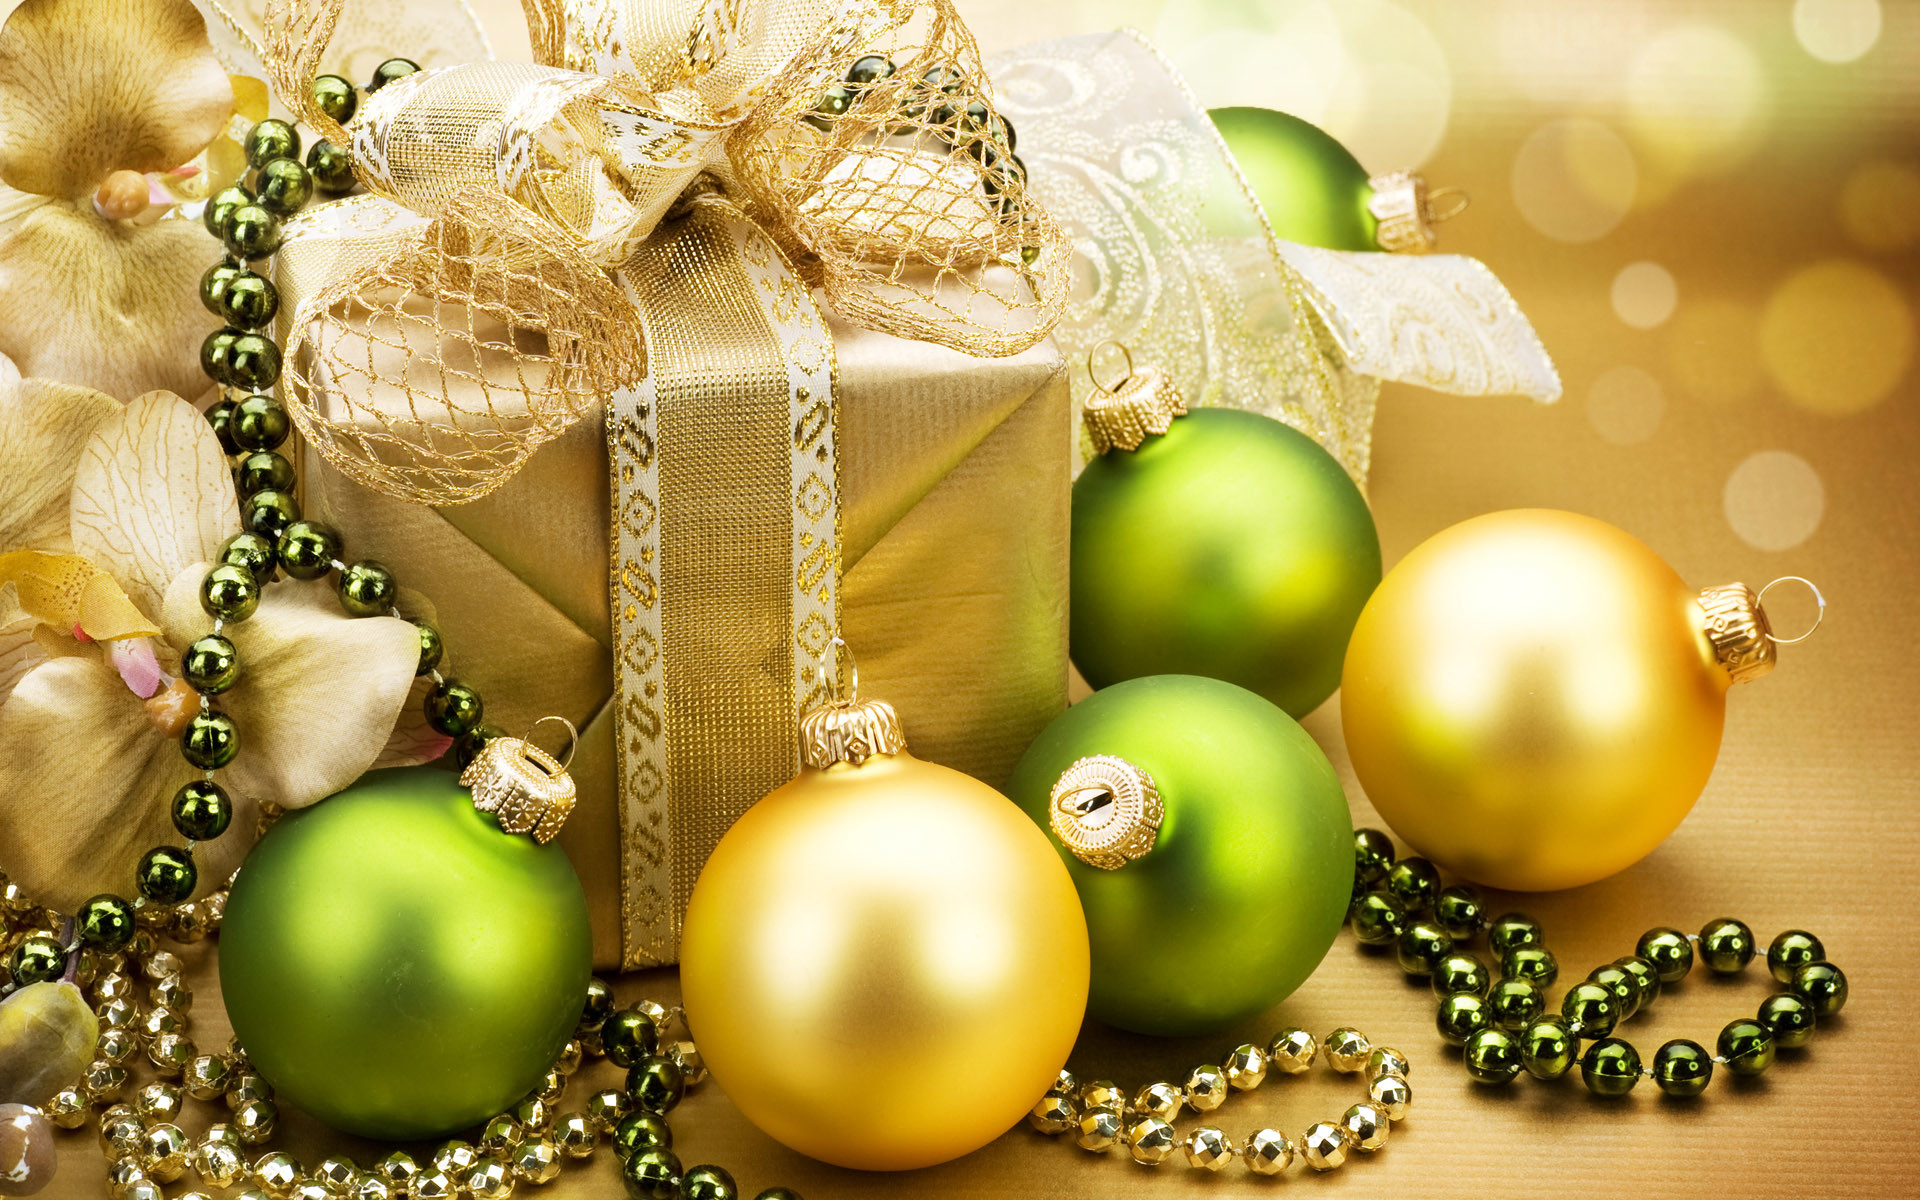 118 best Fondos Navidad images on Pinterest | Merry christmas, Cats and  Christmas images